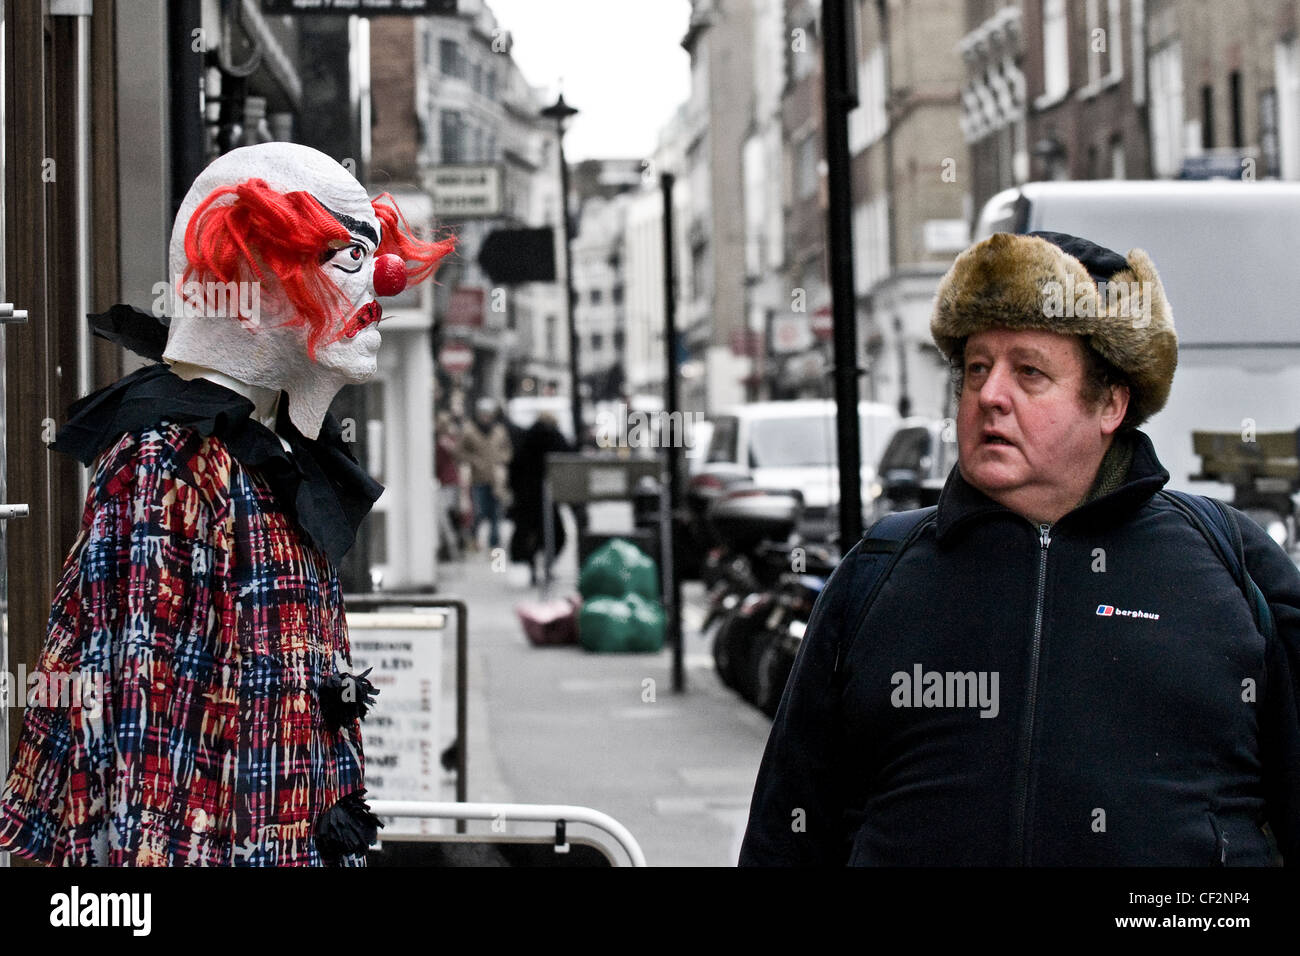 A pedestrian looking at a dummy dressed as a frightening clown. - Stock Image